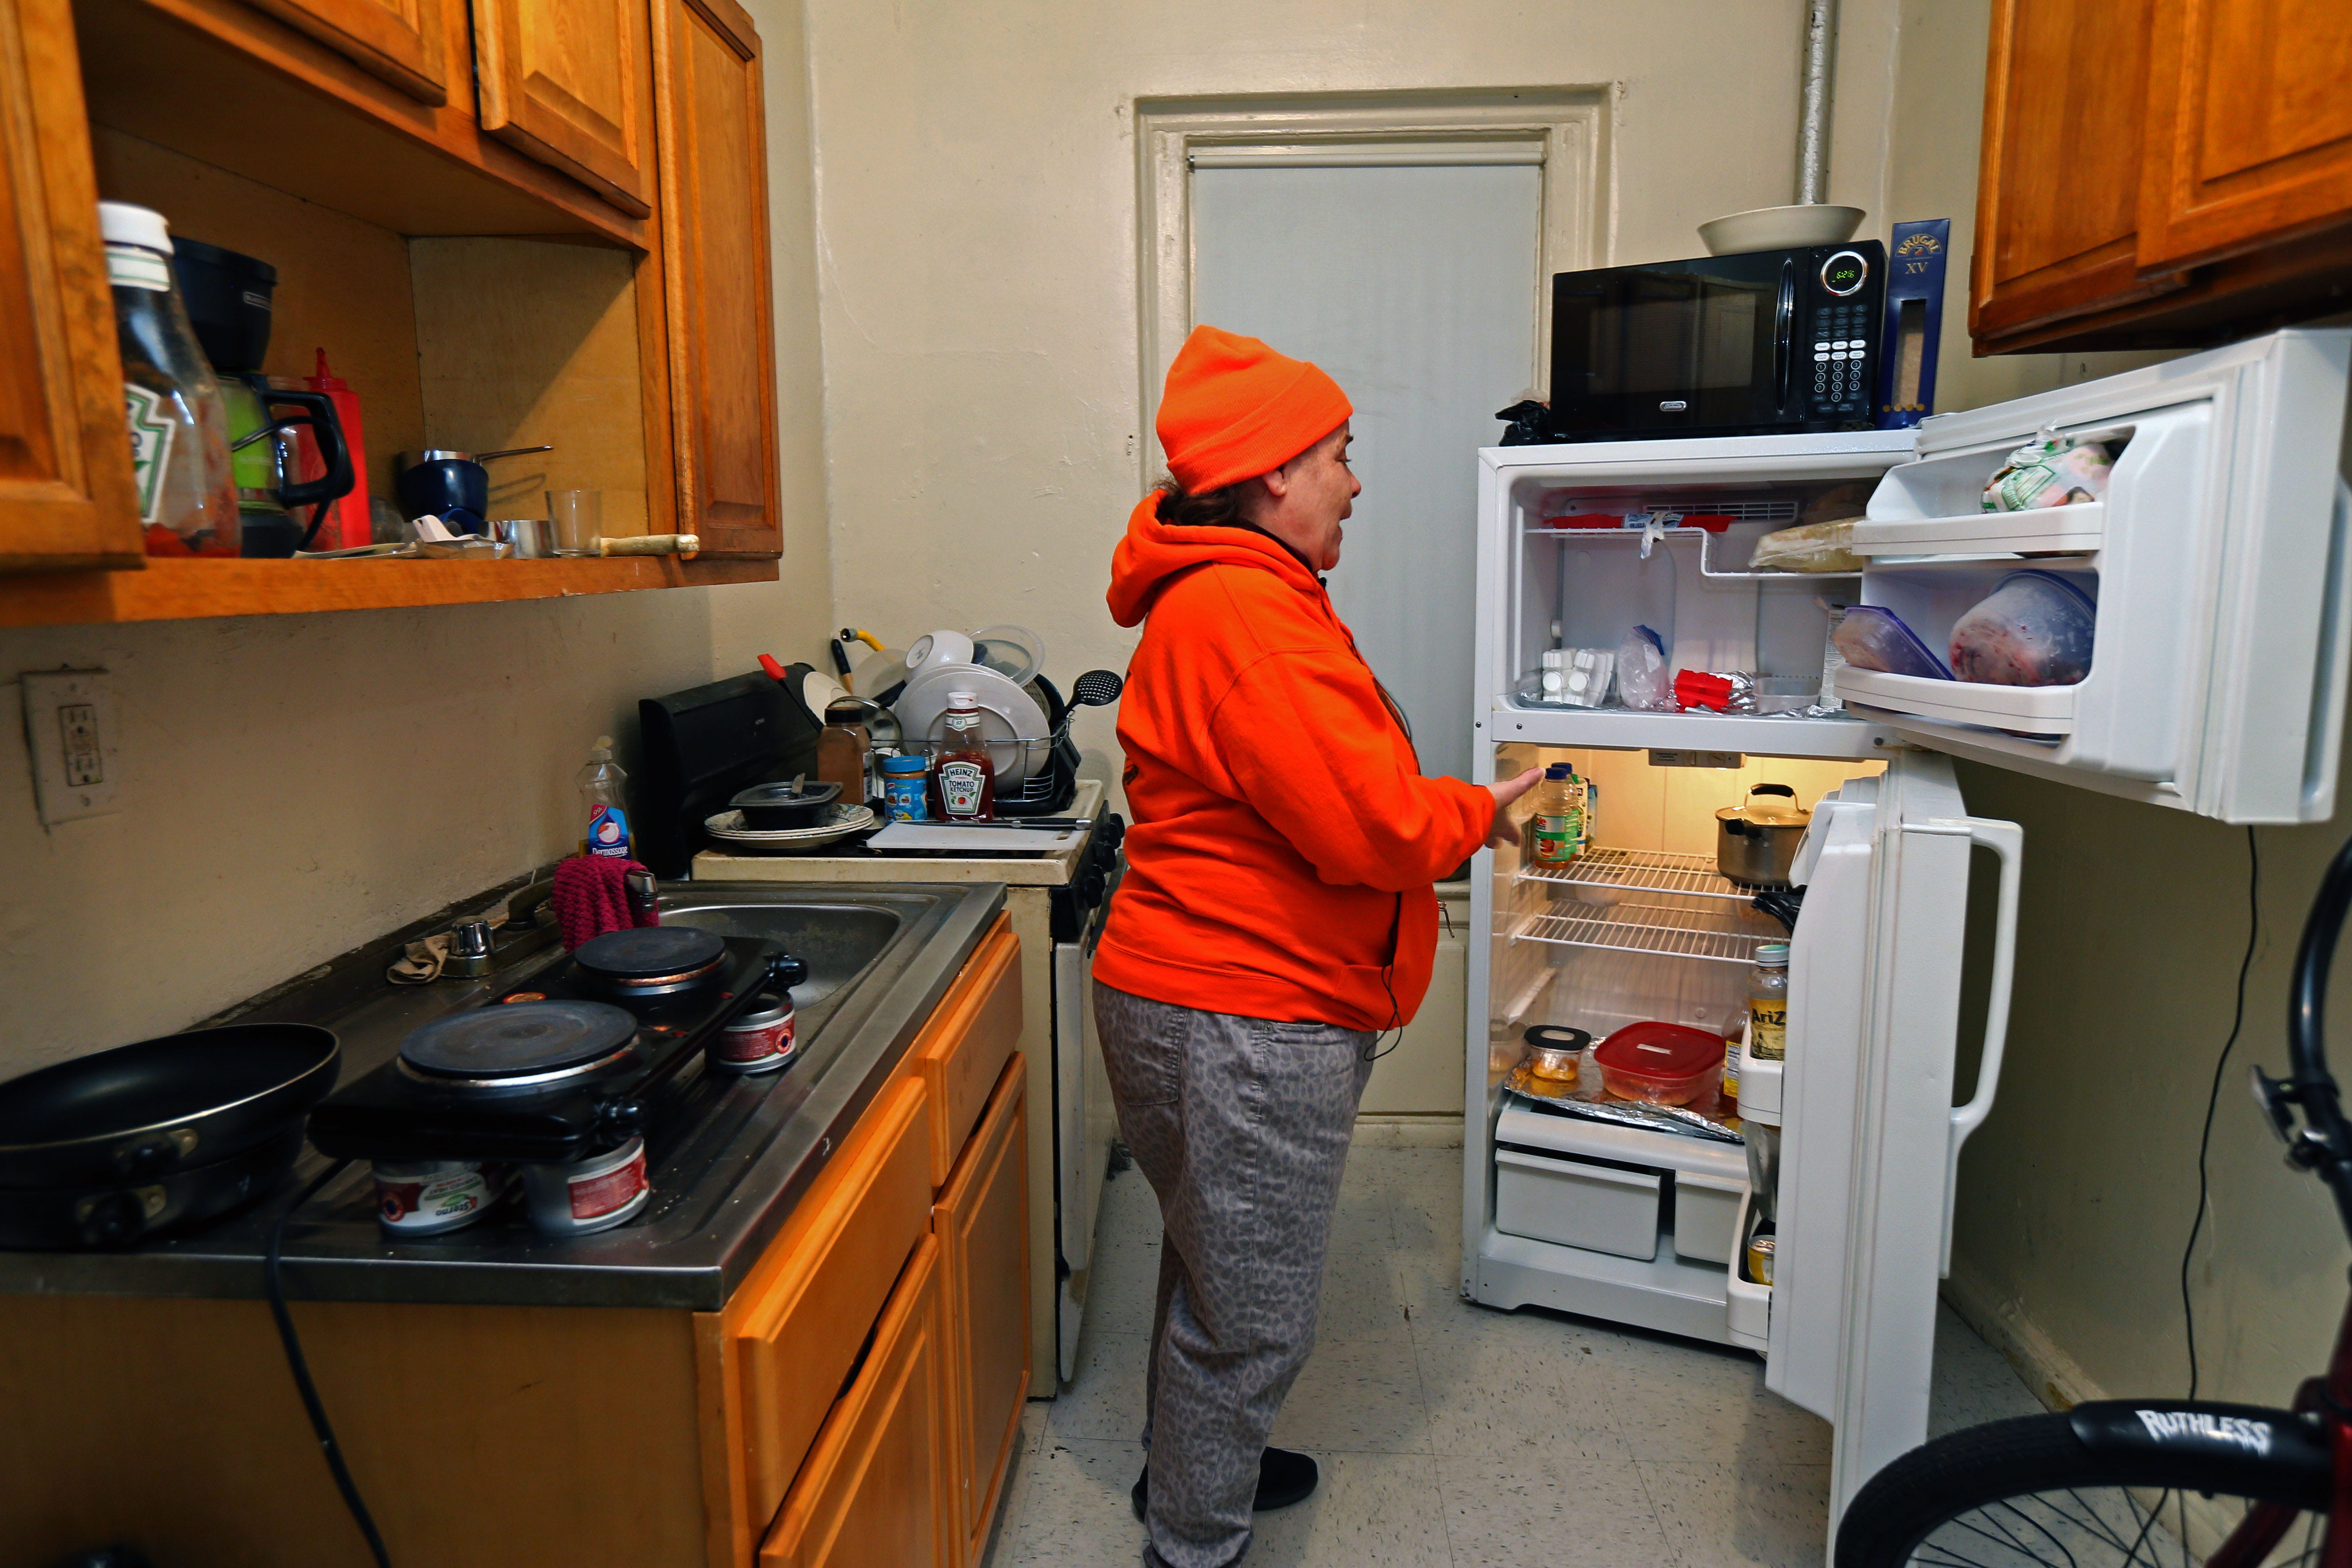 Kim Statuto, 59, keeps a small supply of  food in her refrigerator because she is unable to fully prepare meals at her Bronx apartment. Statuto, a resident for 26 years at the Bronx tenement, said she cooks at her daughter's apartment most days.